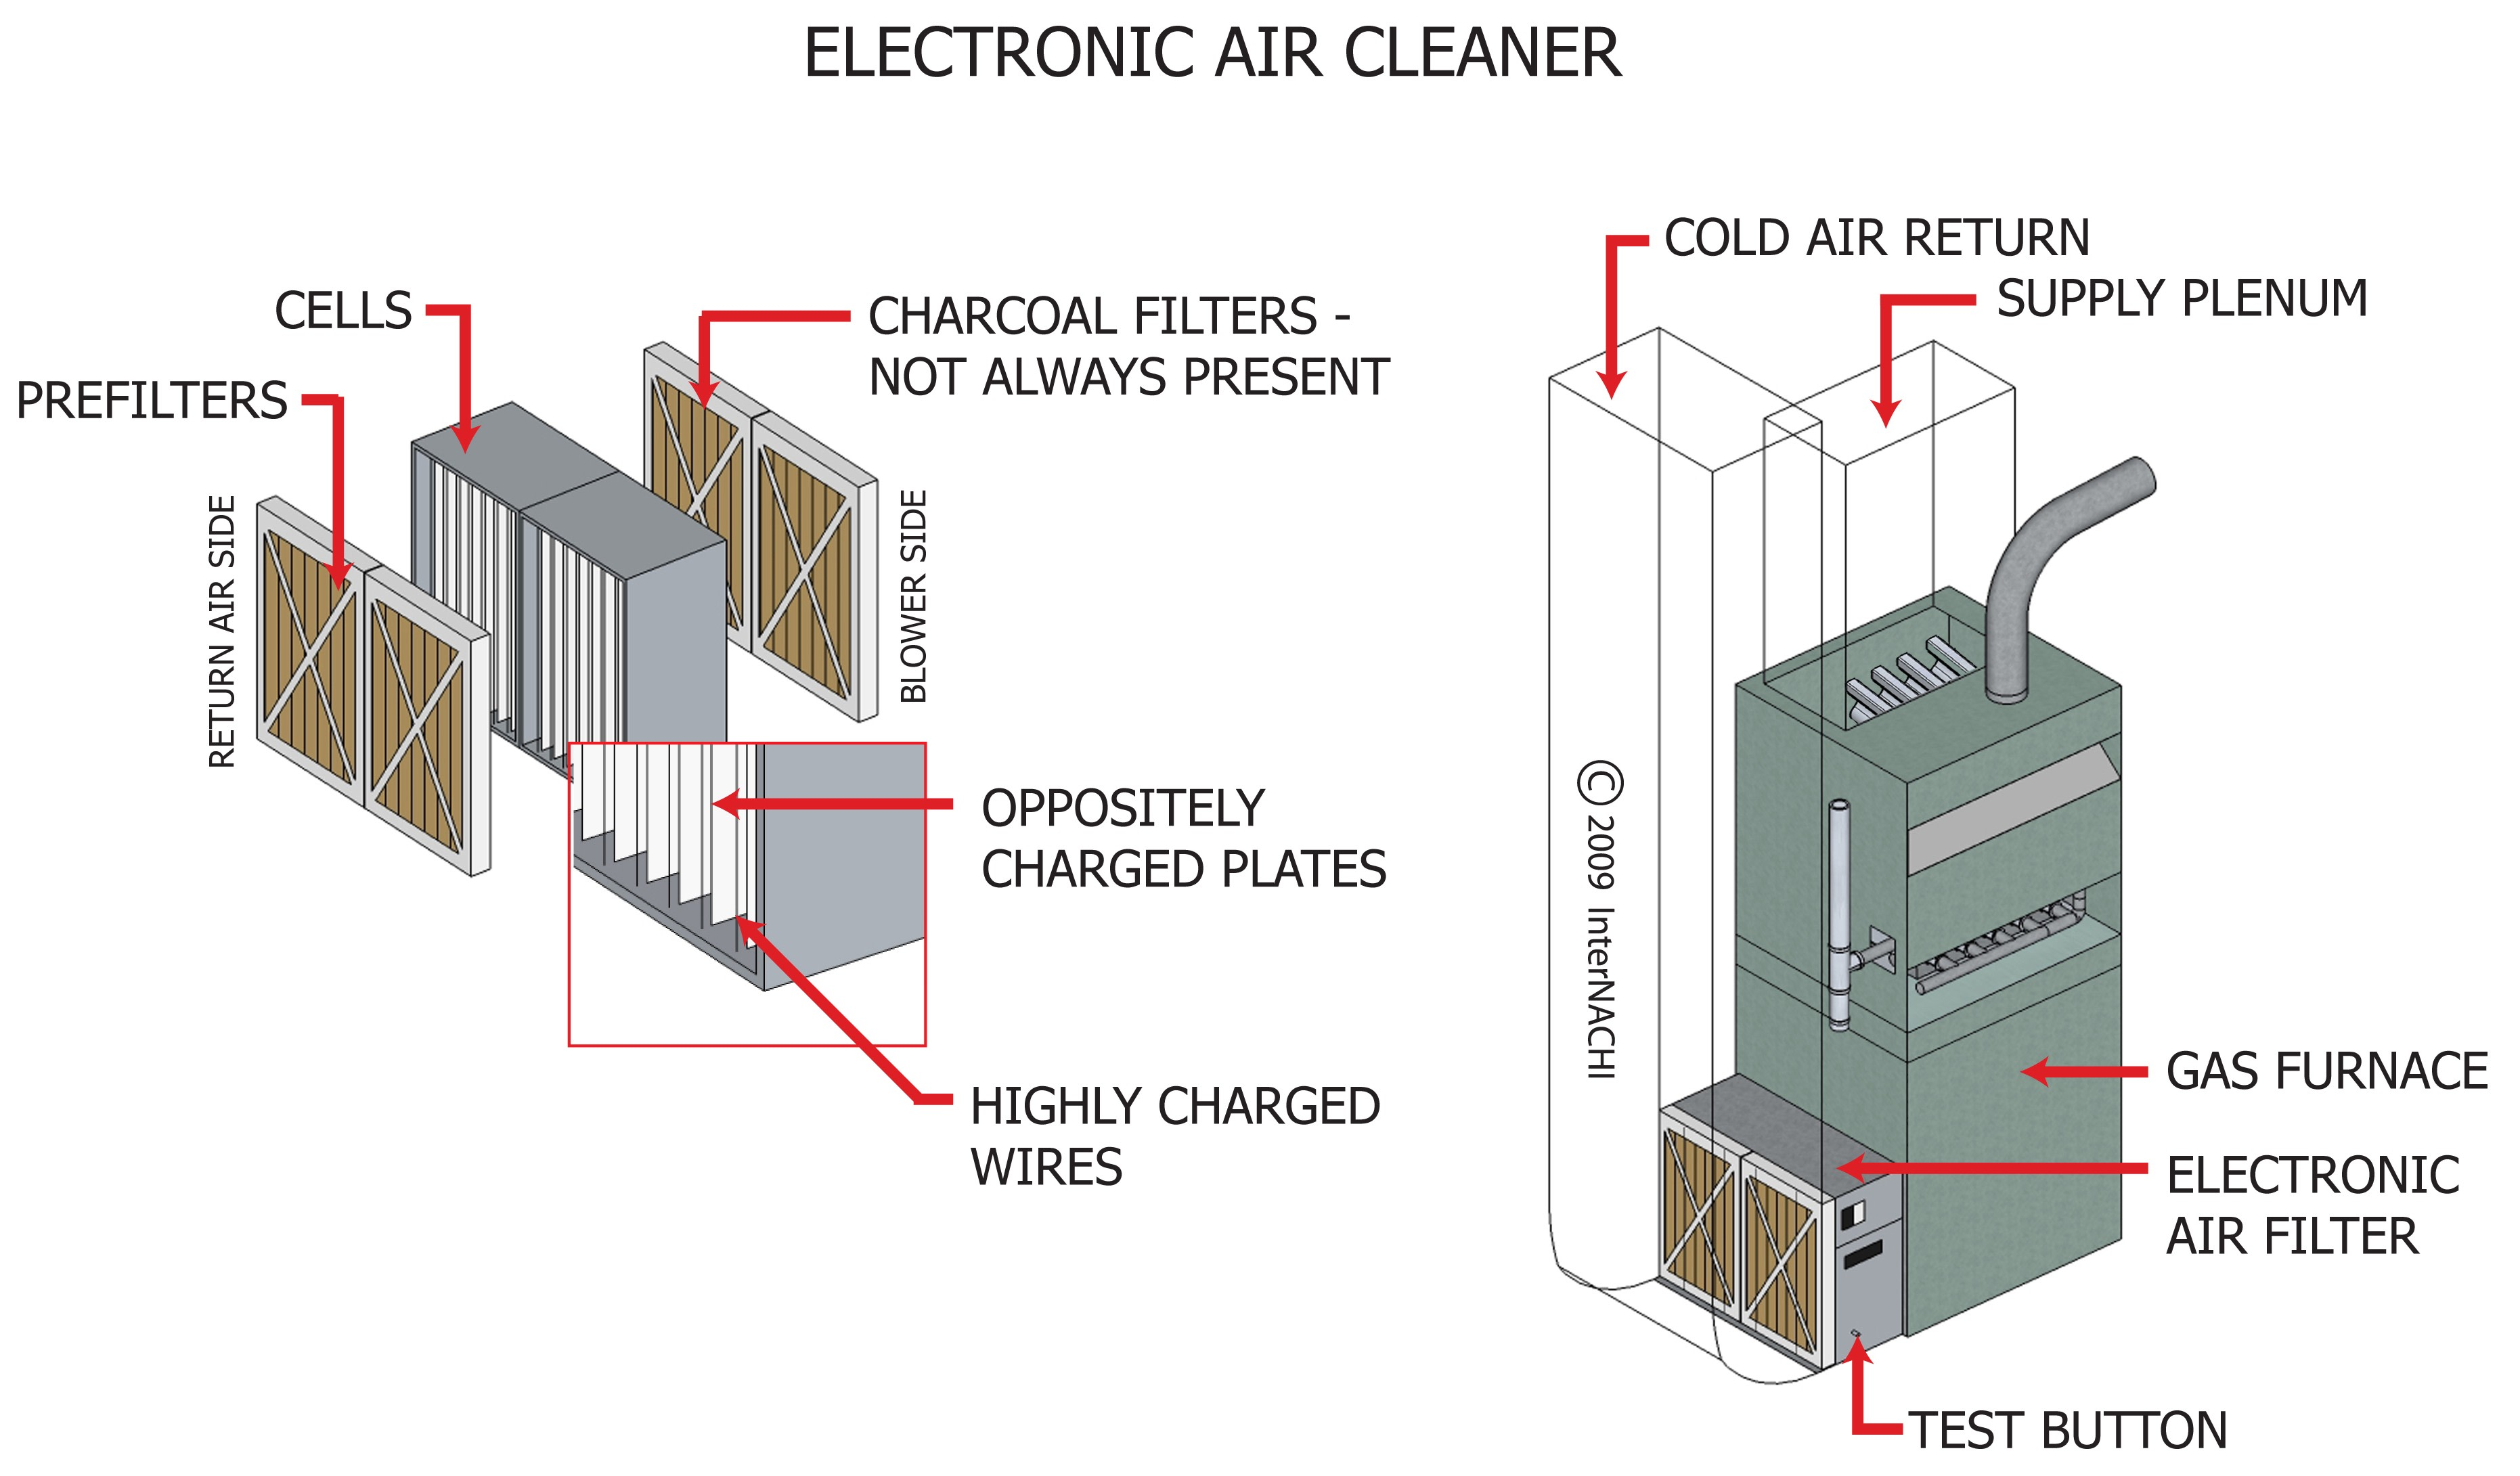 Electronic air cleaner.